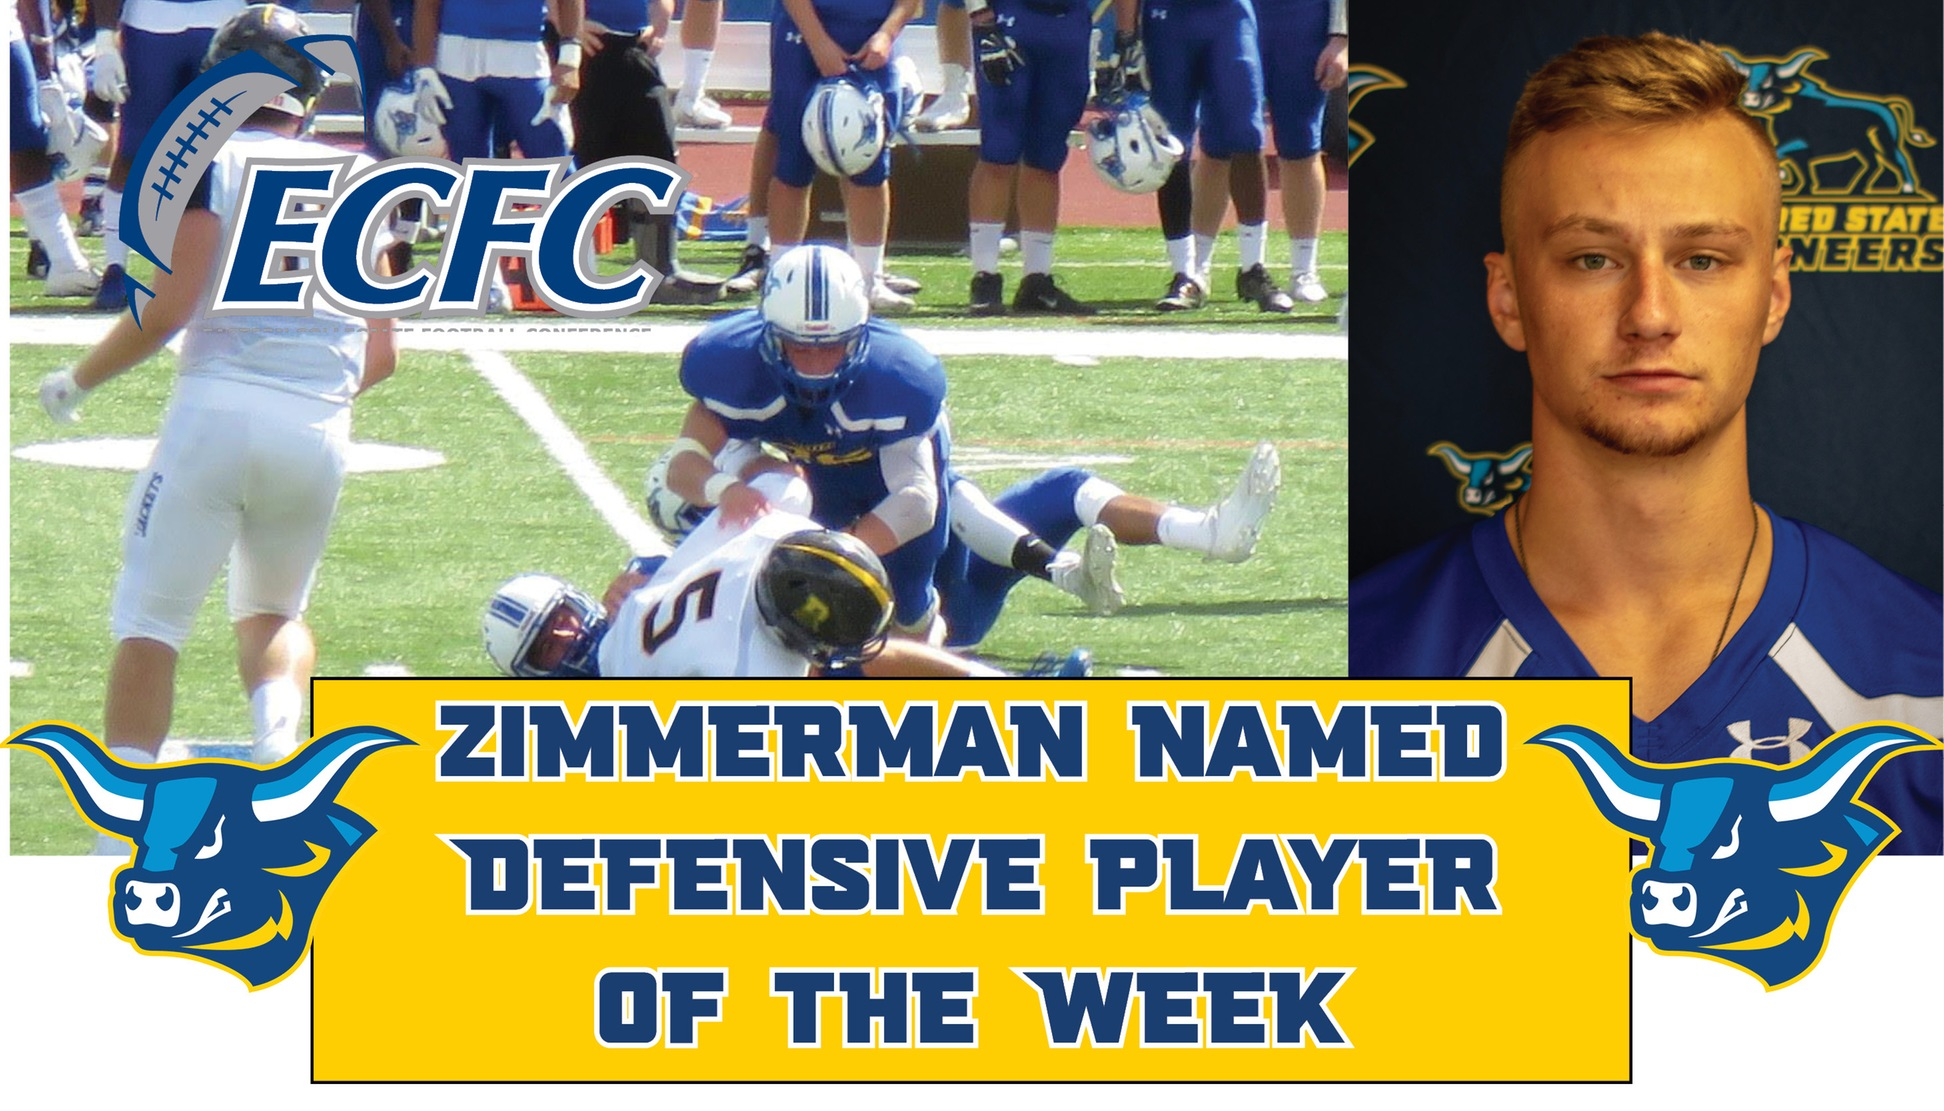 Michael Zimmerman named ECFC Defensive Player of the Week